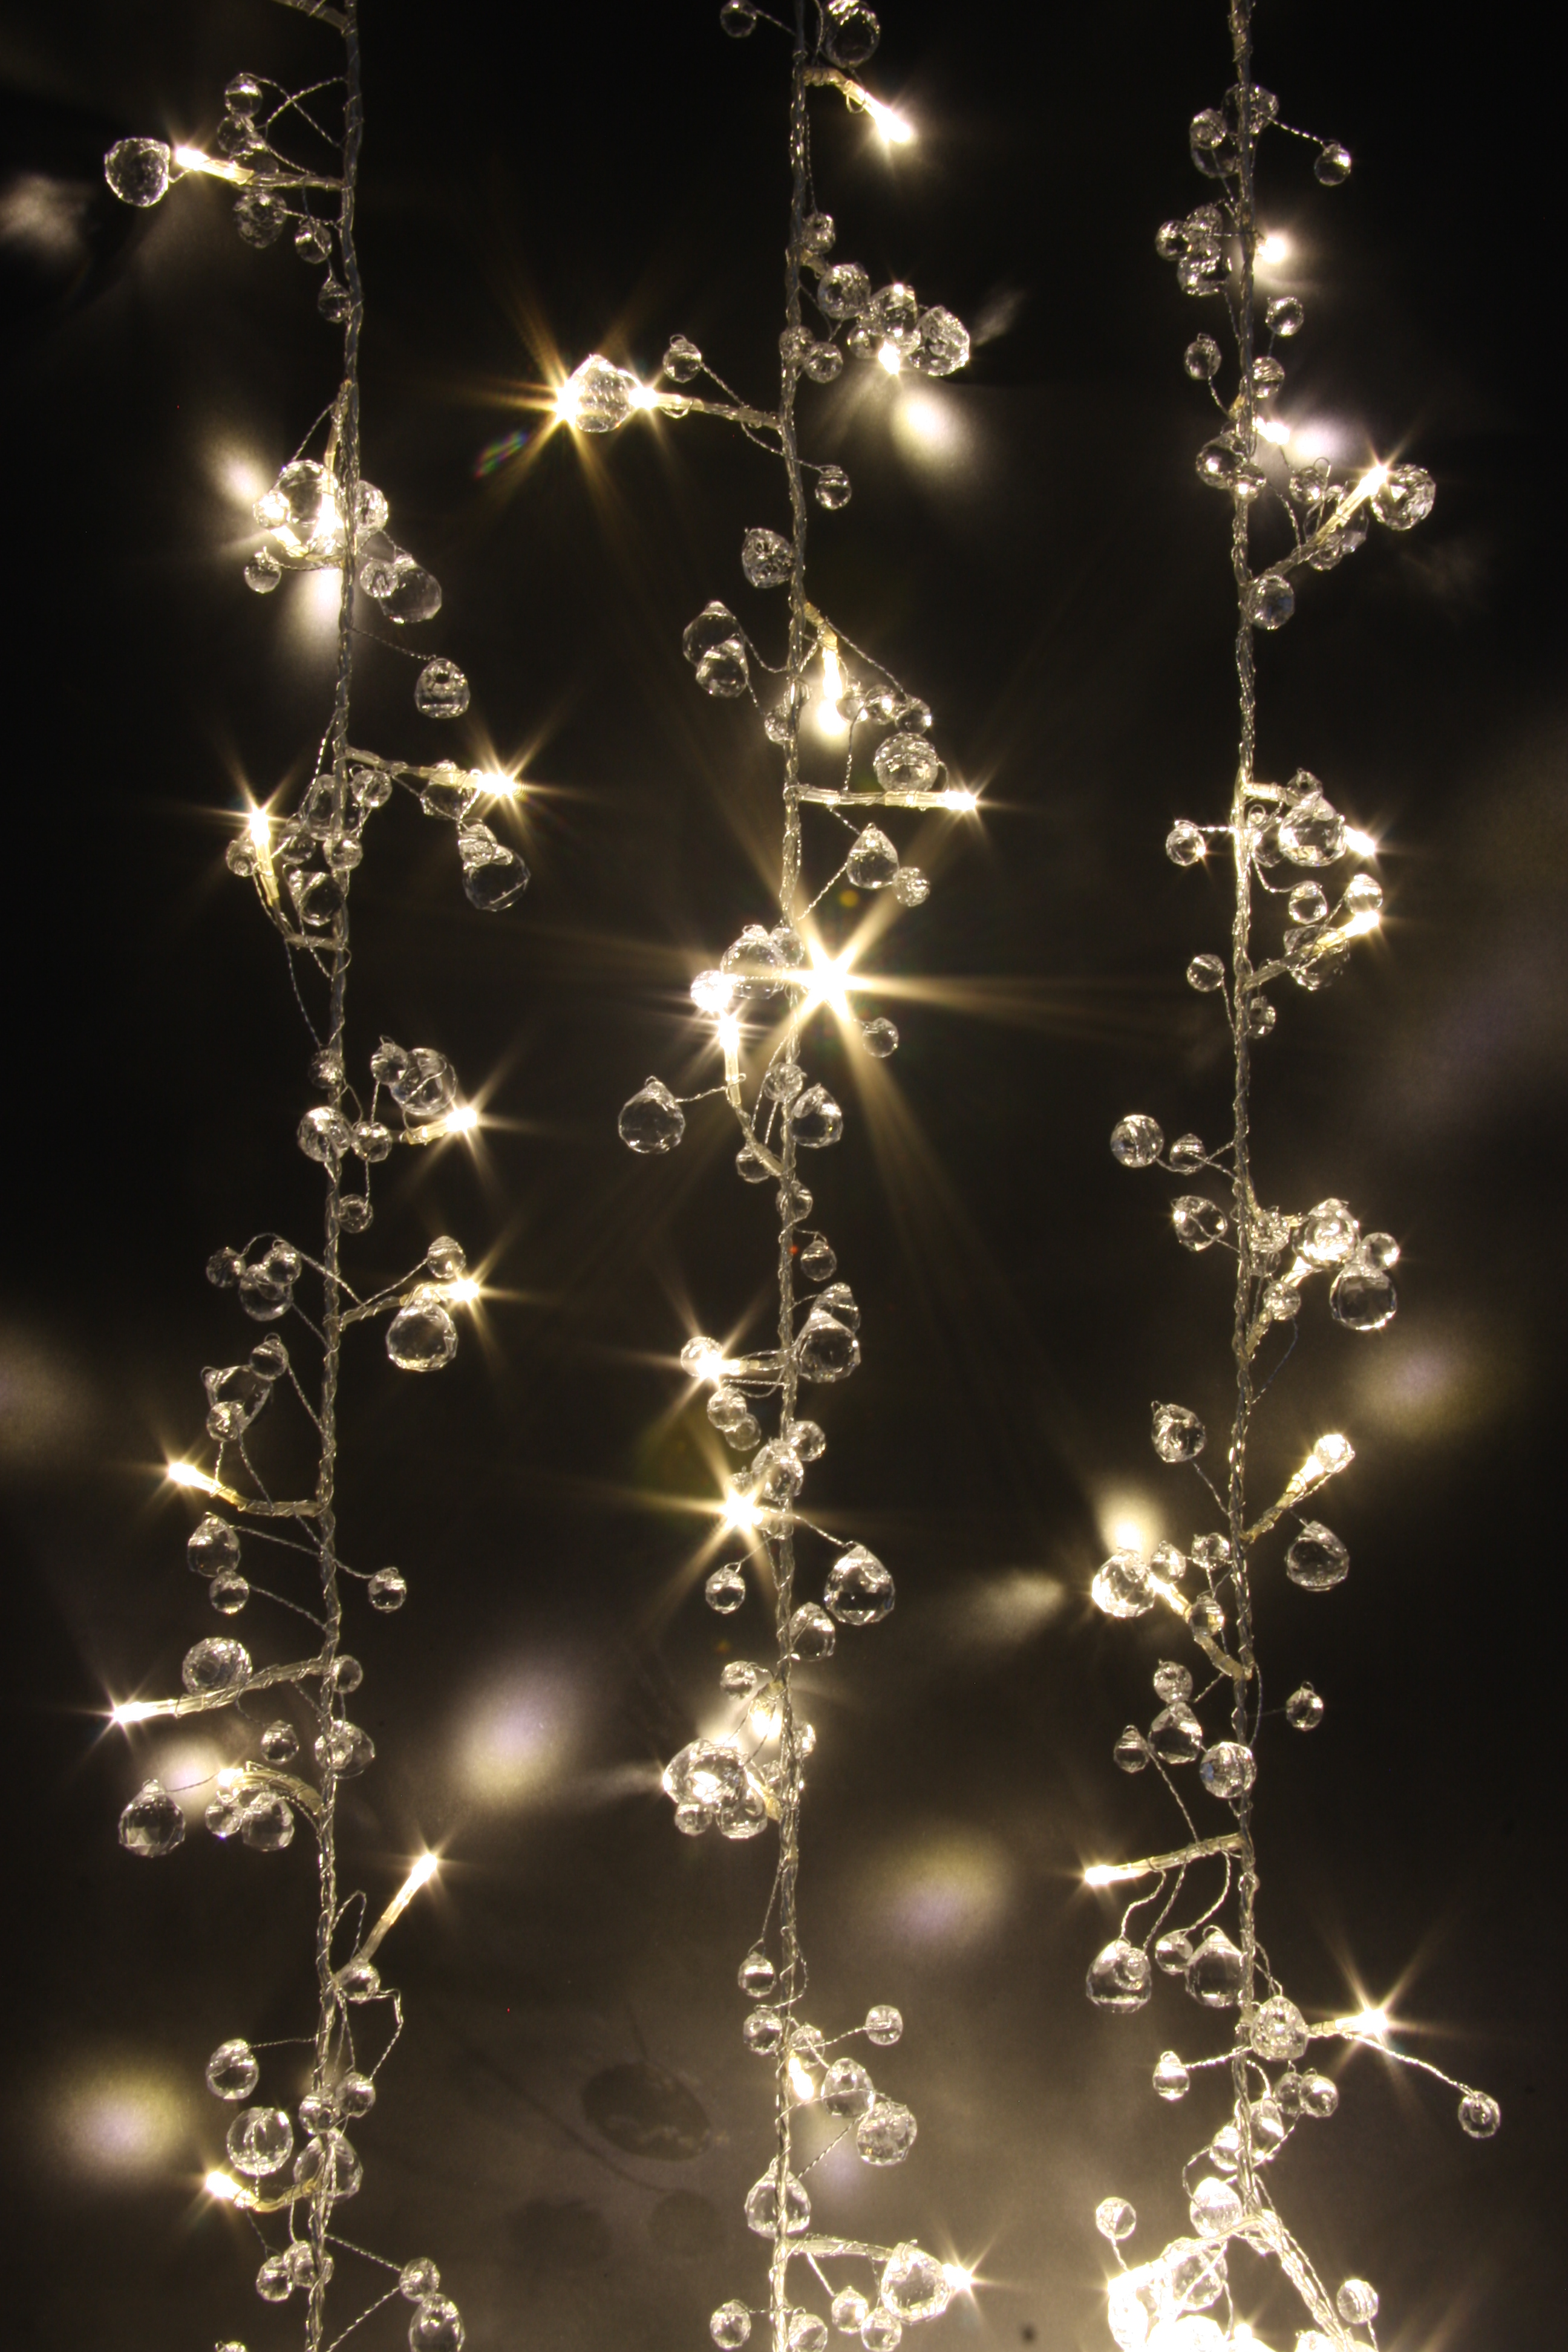 Fairy Lights - Crystal Chic - 50 LED String Lights - Mains Powered-ThinkGadgets eBay